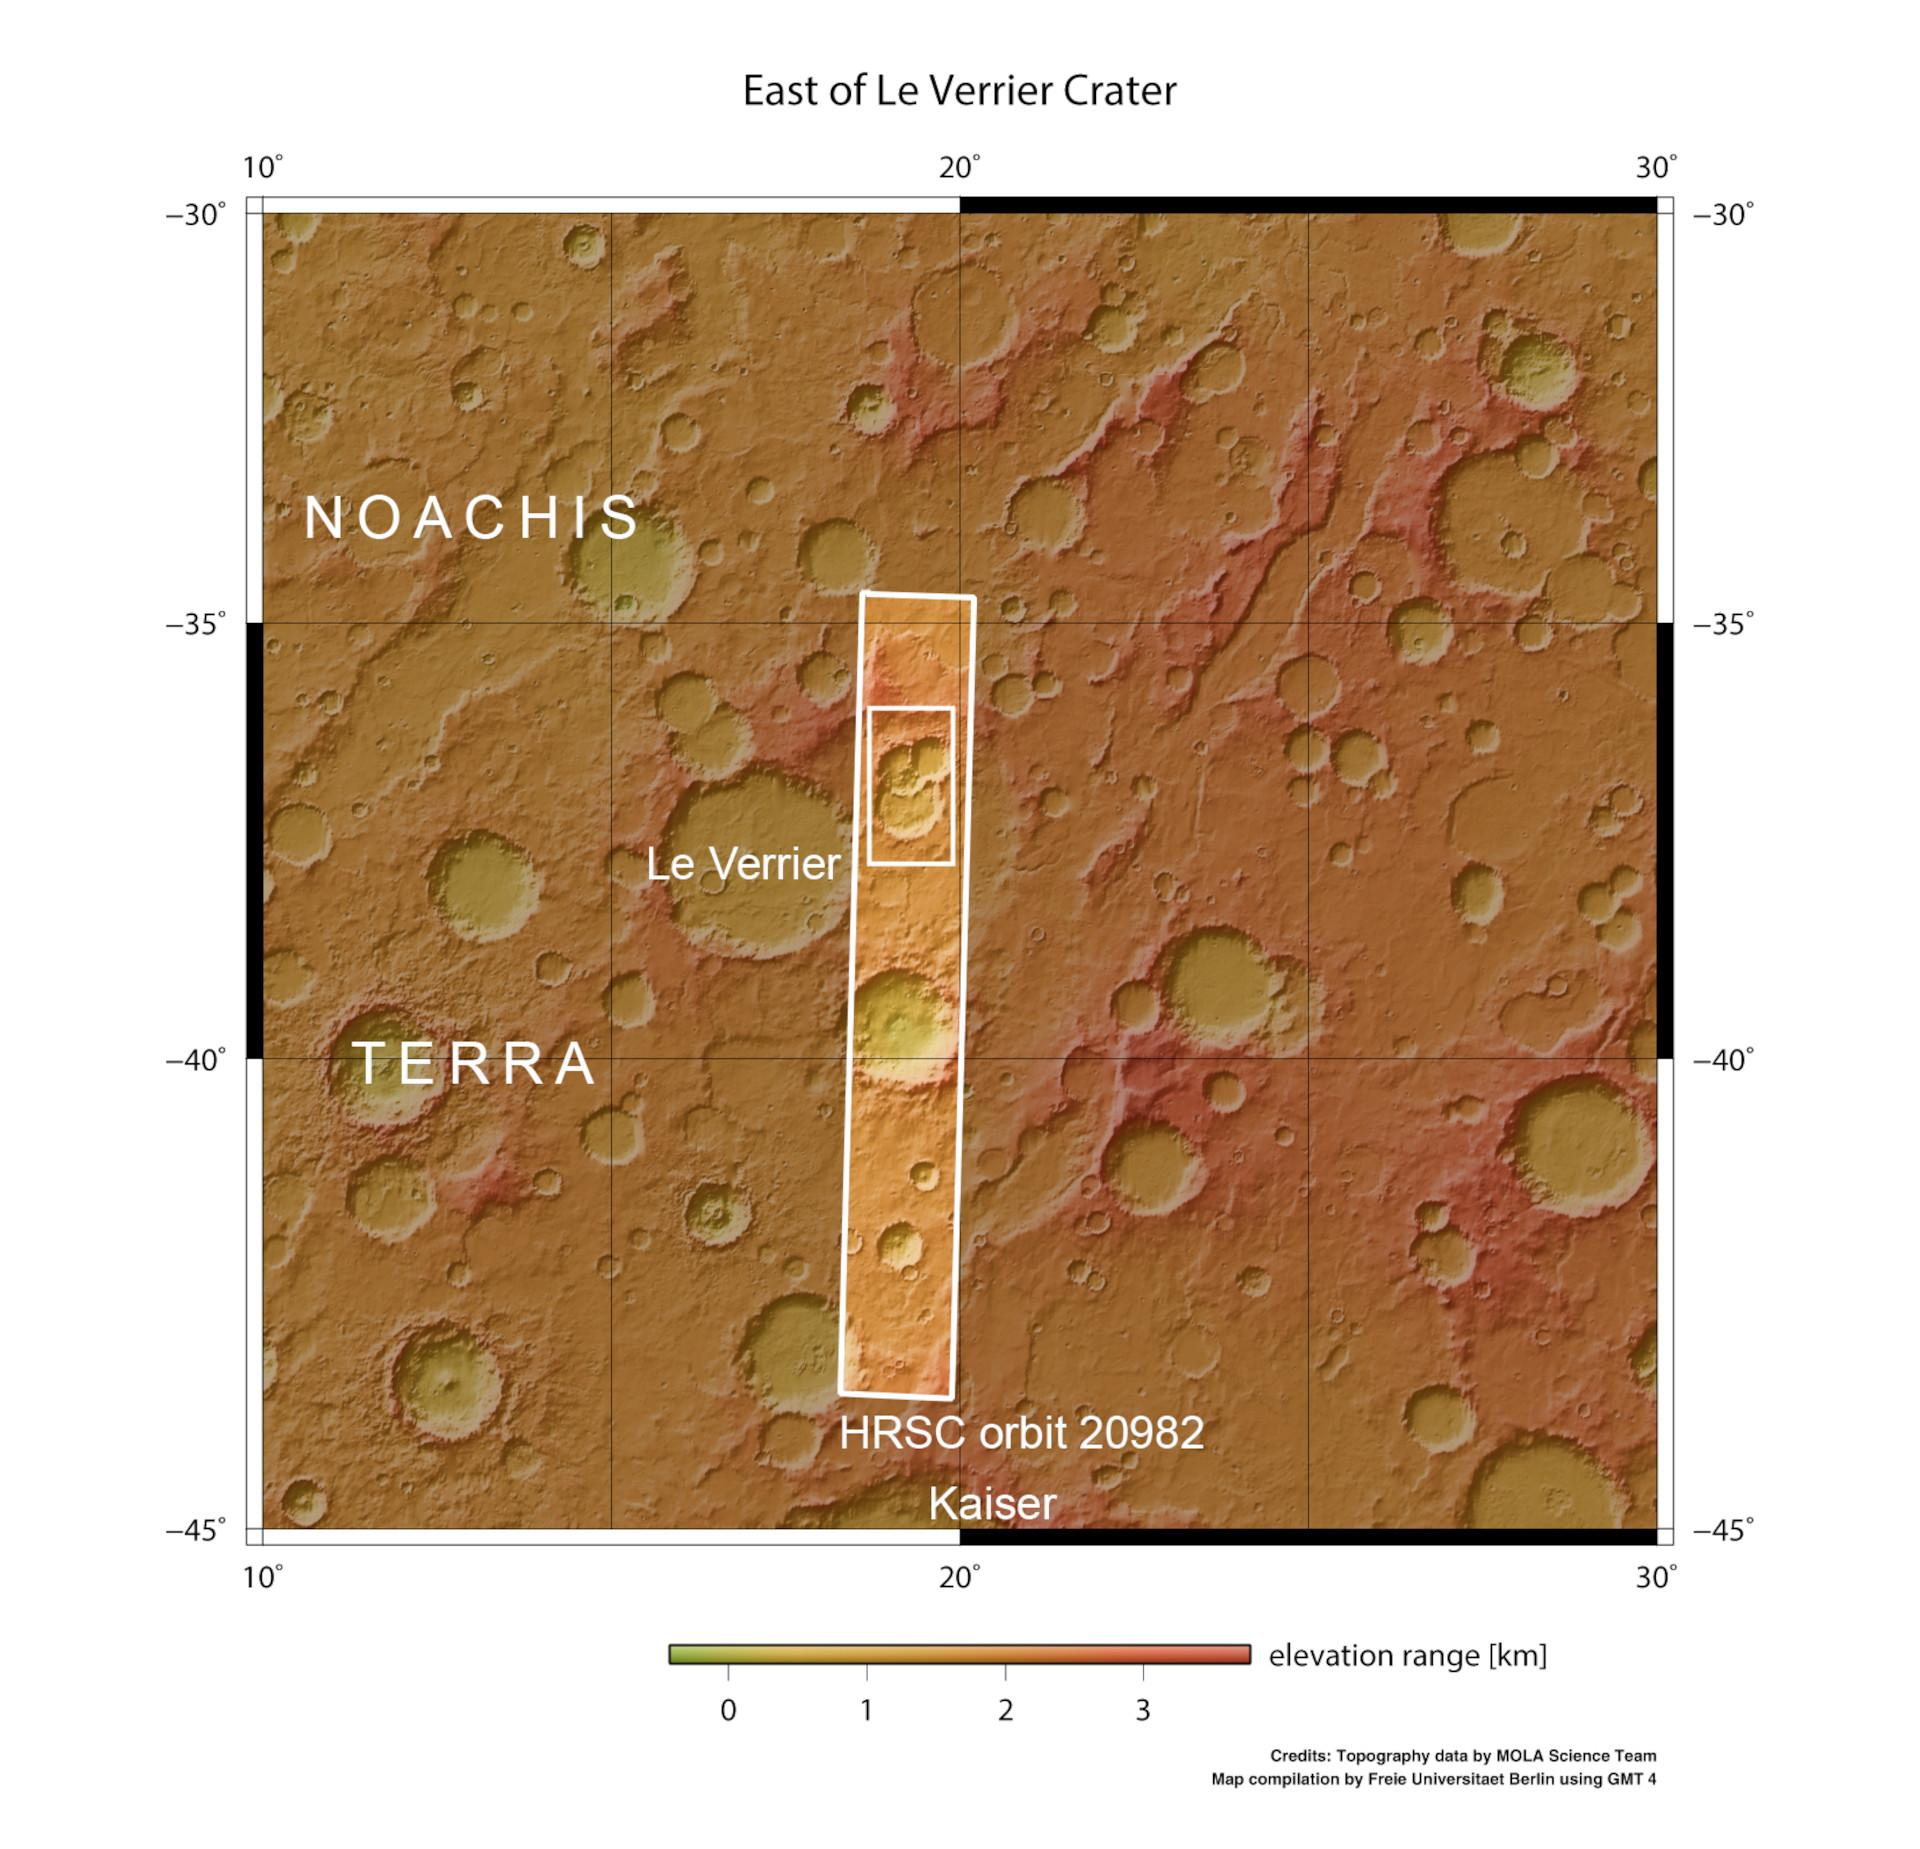 Topographic overview map of the surroundings of a crater triplet in Noachis Terra